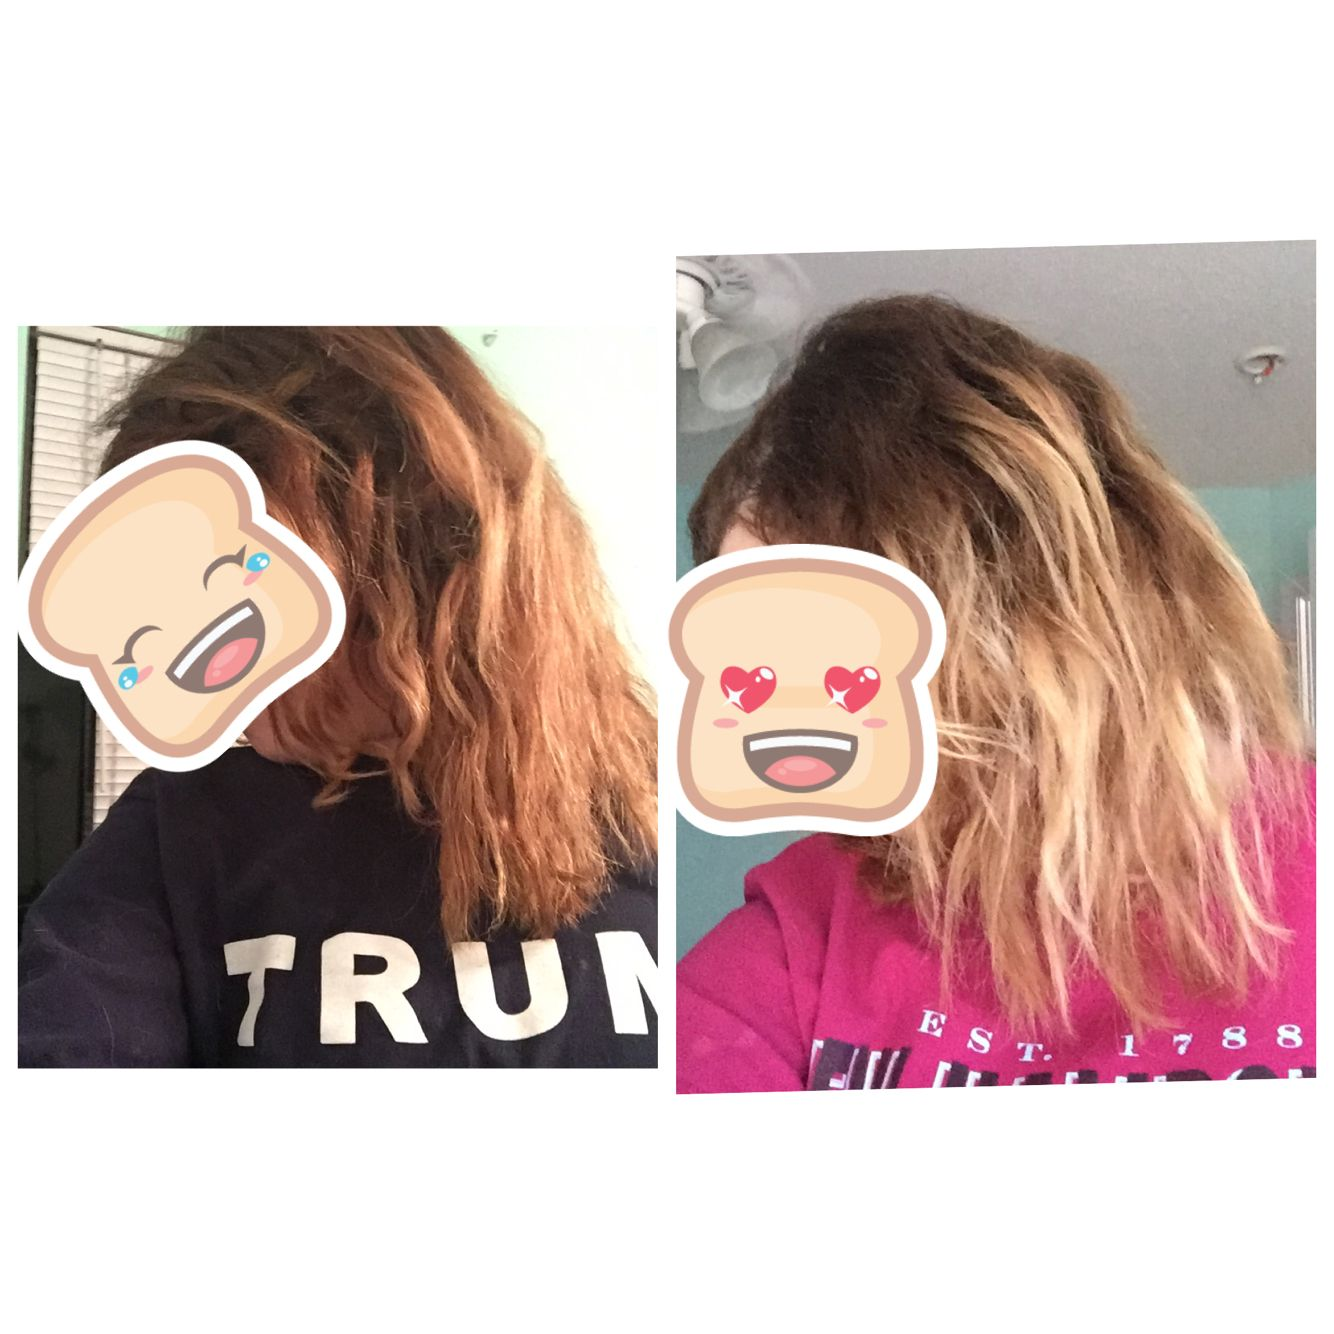 Use Hydrogen Peroxide As Hair Lightener Leave In 30 1hr Depending On Length Of Hair Mix With Leave In How To Lighten Hair Peroxide Hair Hydrogen Peroxide Hair